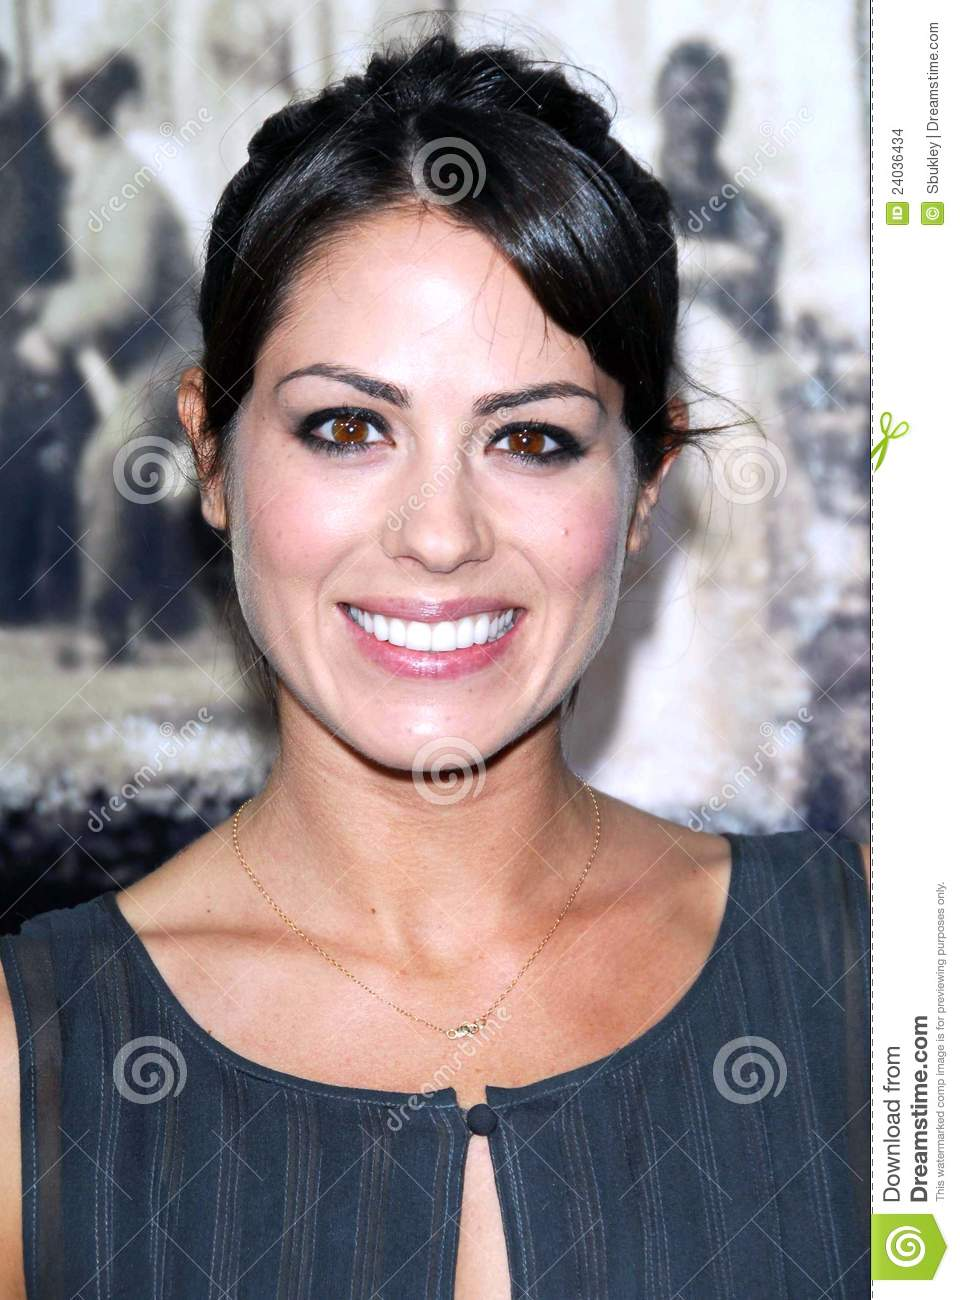 michelle borth hawaii 5-0